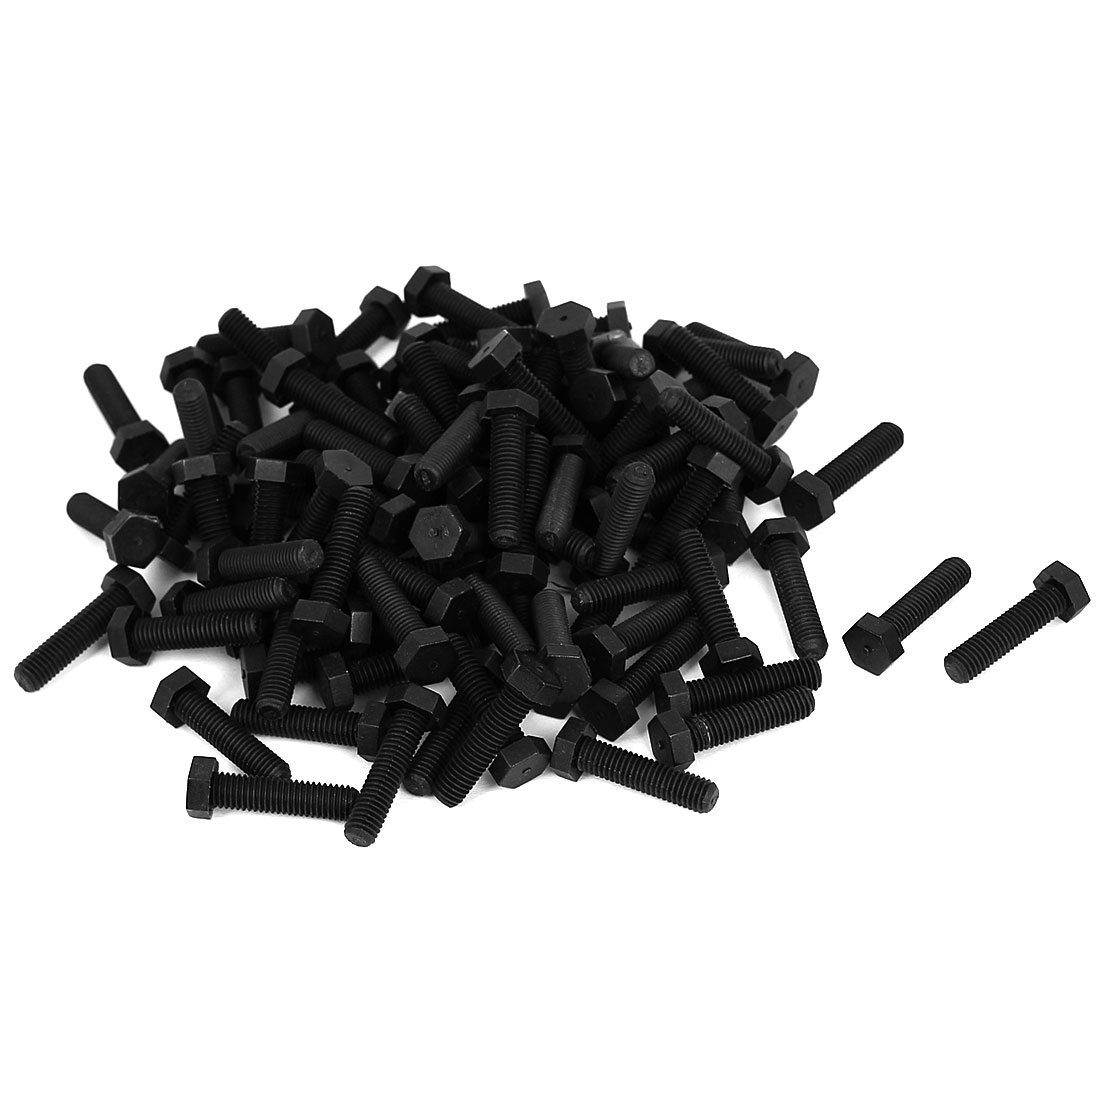 M5x20mm Full Thread Nylon Metric Hex Hexagon Head Cap Screw Bolt Black 100Pcs